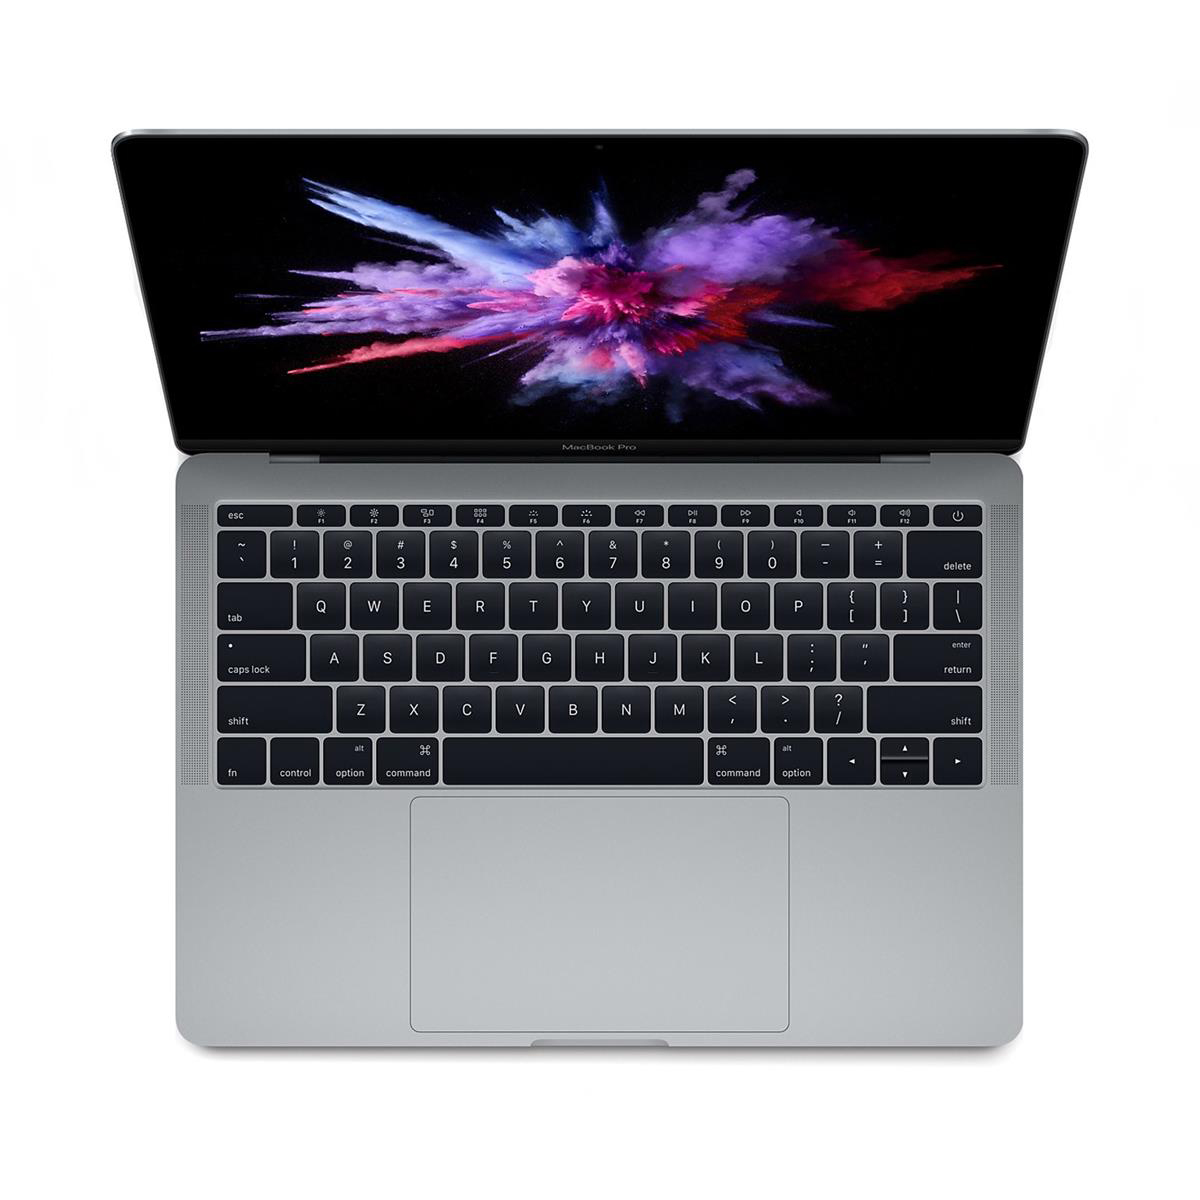 Apple MacBook Pro Mac OS Wi-Fi 8GB RAM 128GB SDD 10-hour Battery 13in Space Grey Ref MPXQ2B/A